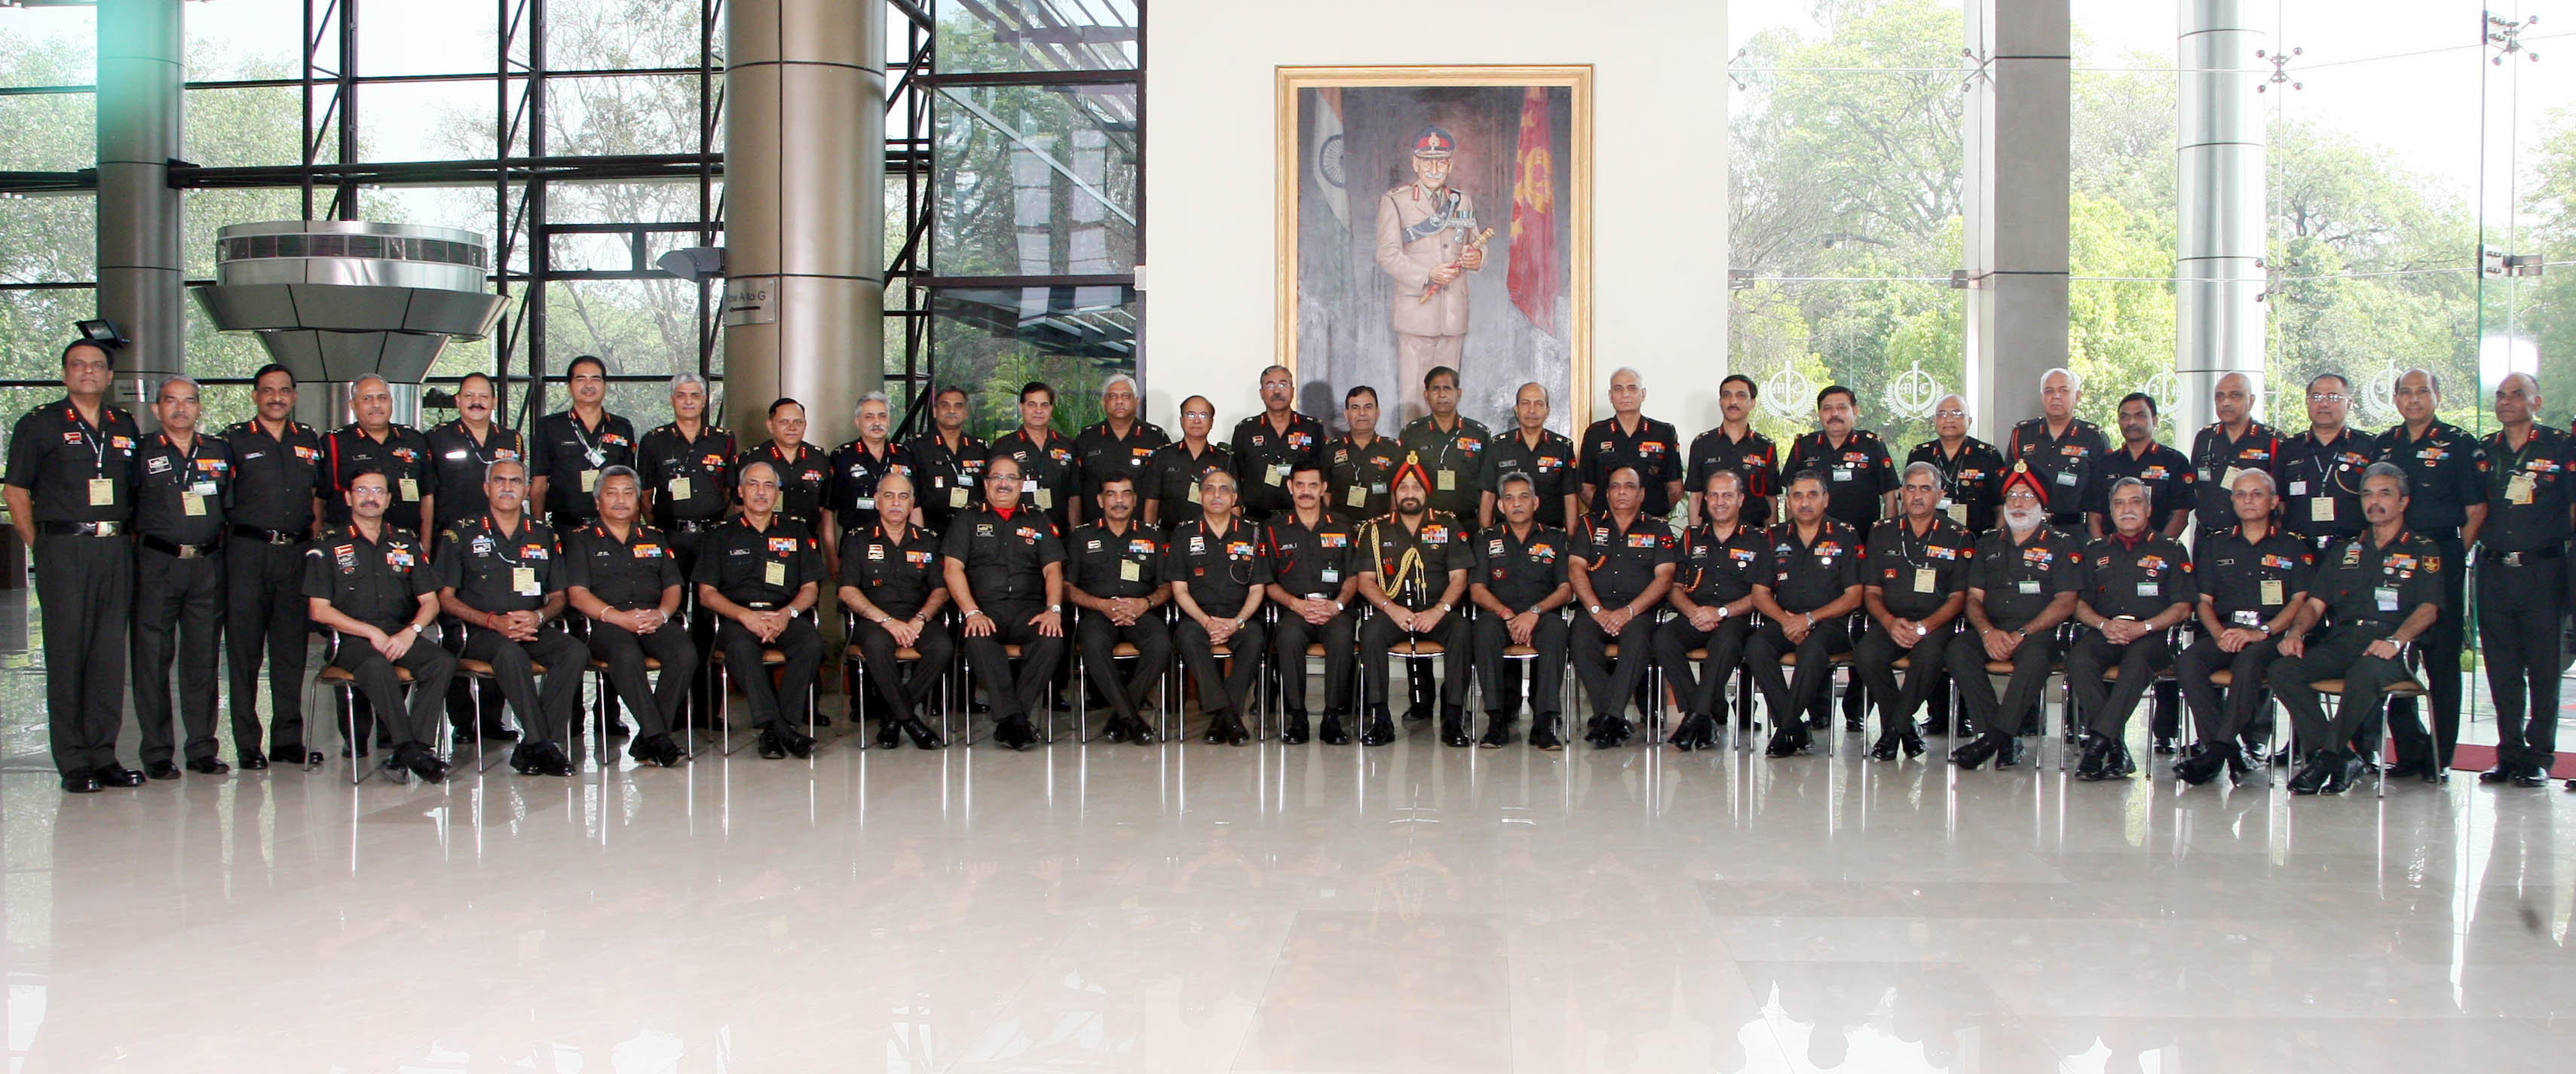 The_COAS_with_Army_Commanders _DGs_&_PSOs_at_Army_Commanders'_Conference _23_Apr_14 in New Delhi (2)